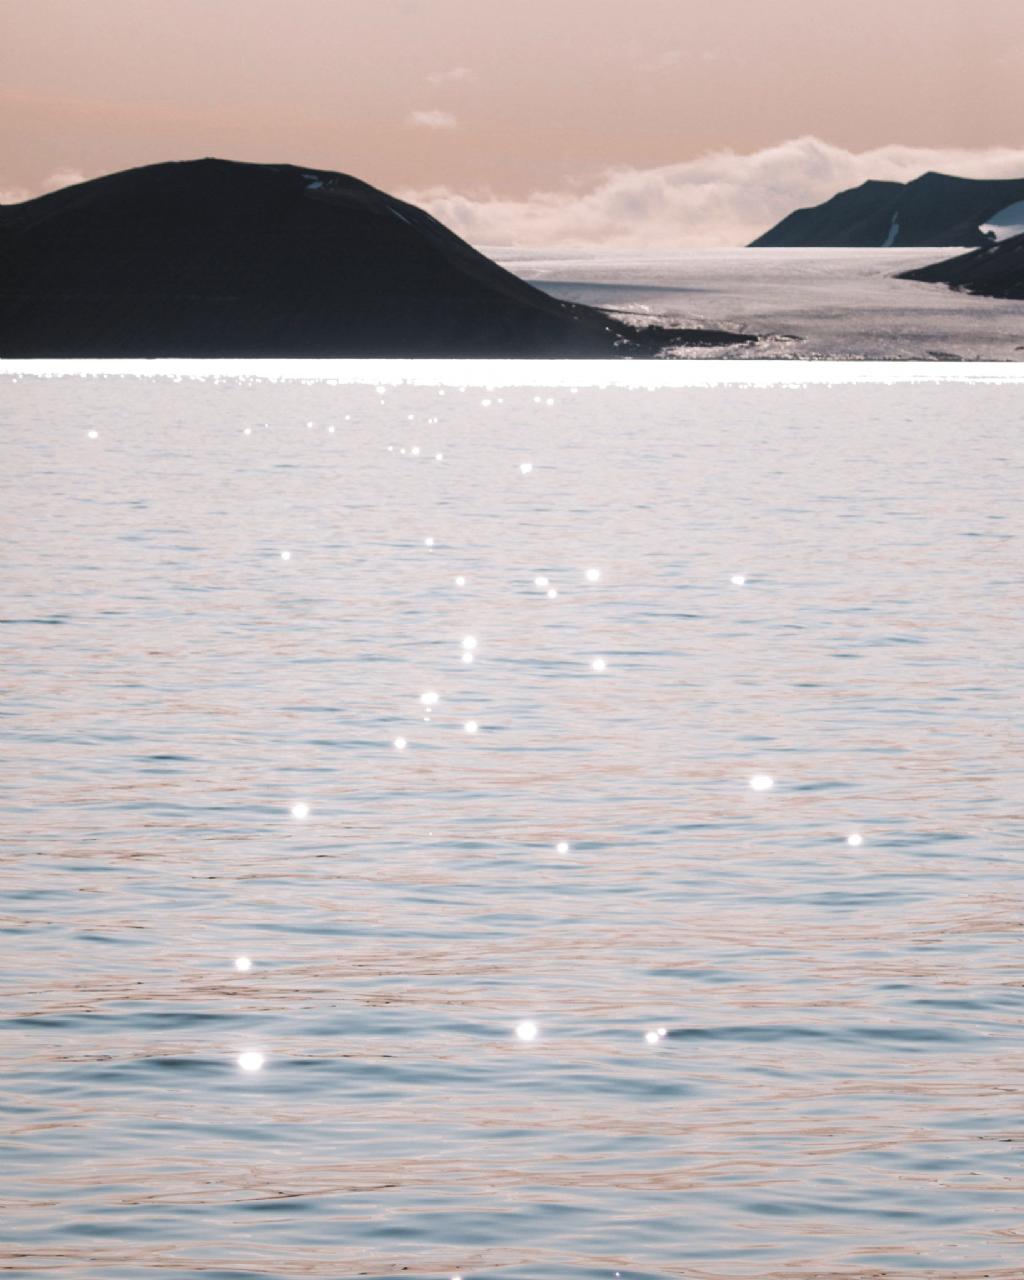 Pastel colors of Svalbard before sunset over the water in winter with a glacier via @finduslost | Looking to make photography editing easier? Our Adobe Lightroom Presets (mobile presets and desktop presets) Winter Collection is a series of 6 custom presets (photo filters) that will make your photography stand out. Shop now. #photography101 #photographytips #photoediting #photopresets #finduslost